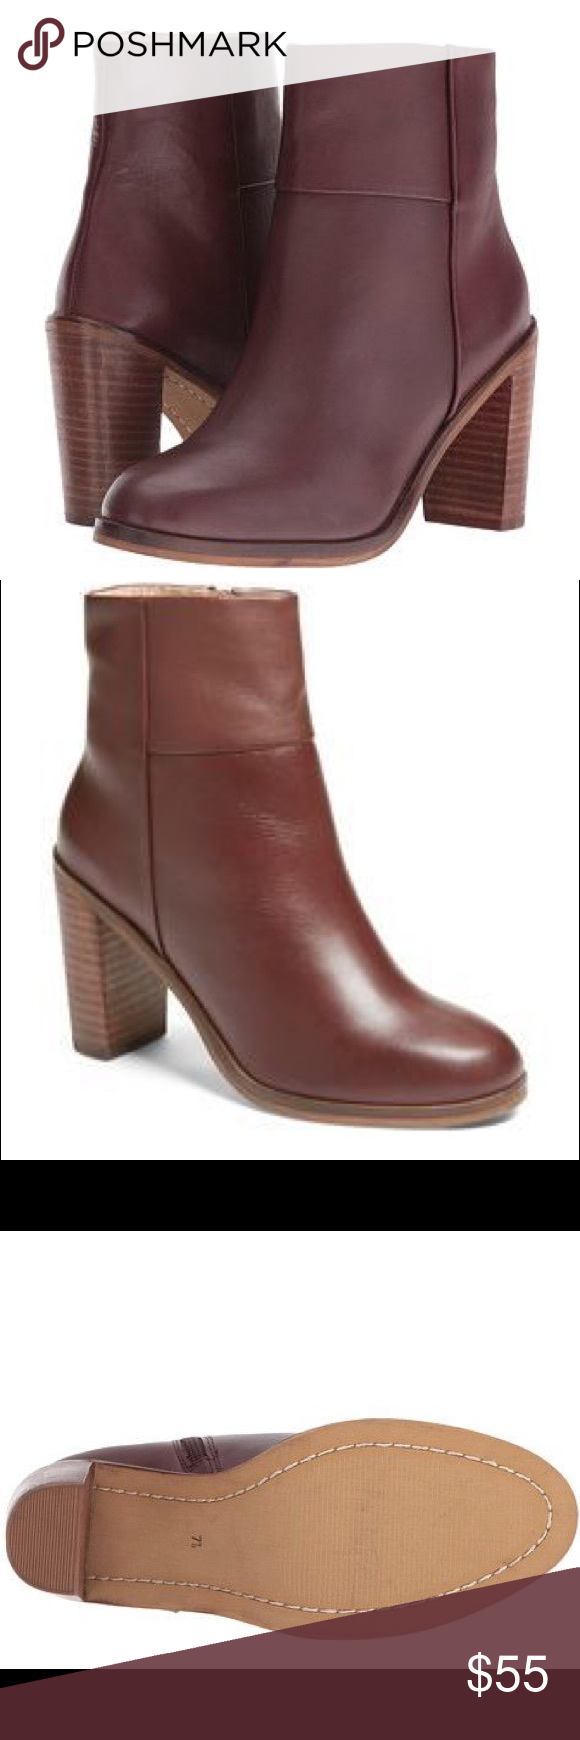 """Seychelles Gossip Block Heel Bootie A versatile addition to your everyday wardrobe, this block-heel bootie made from smooth leather is both sleek and modern. - 3 1/2"""" heel (size 8.5) - 5"""" shaft - Side zip closure - Leather upper/synthetic lining and sole - Imported - Women's Shoes Color is Oxblood Seychelles Shoes Ankle Boots & Booties"""